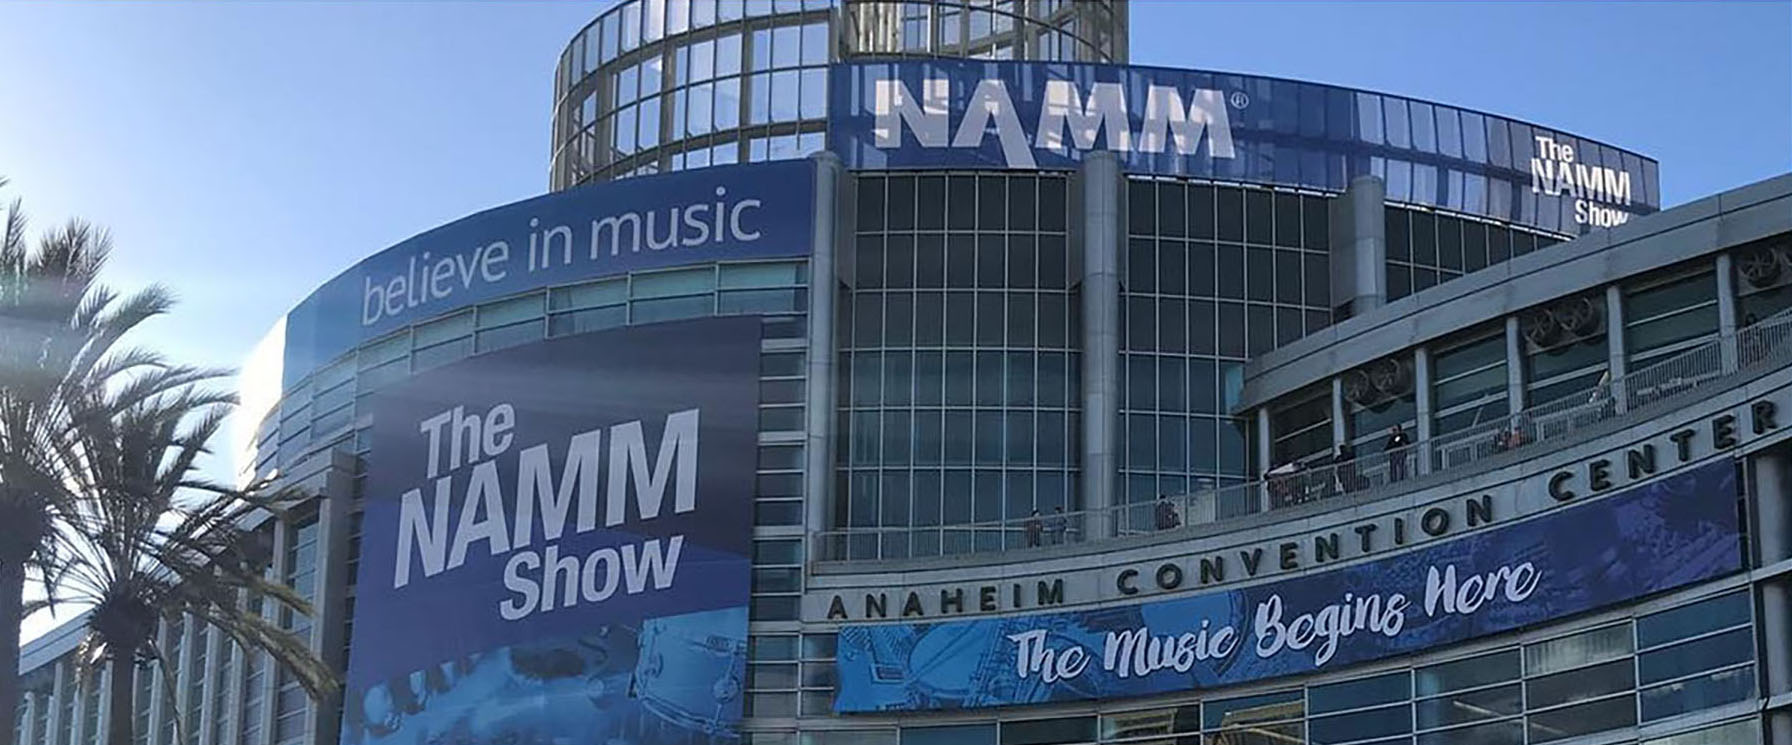 NAMM Show at the Anaheim Convention Center